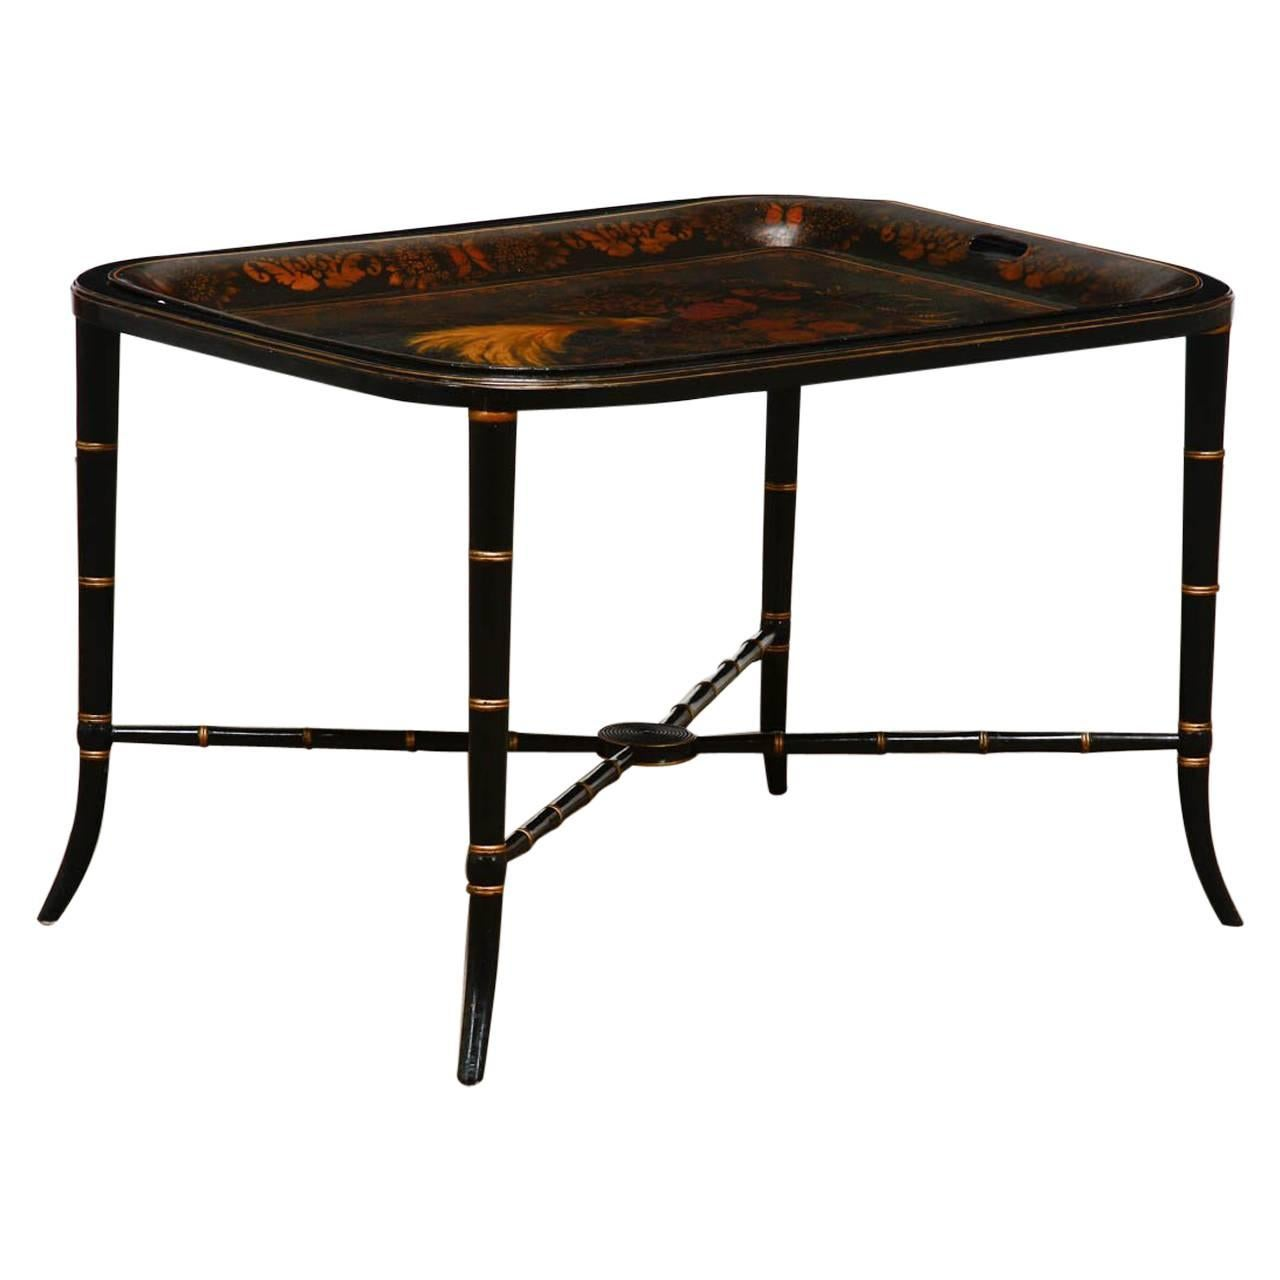 Regency Style Faux Bamboo Painted Tole Tray Table